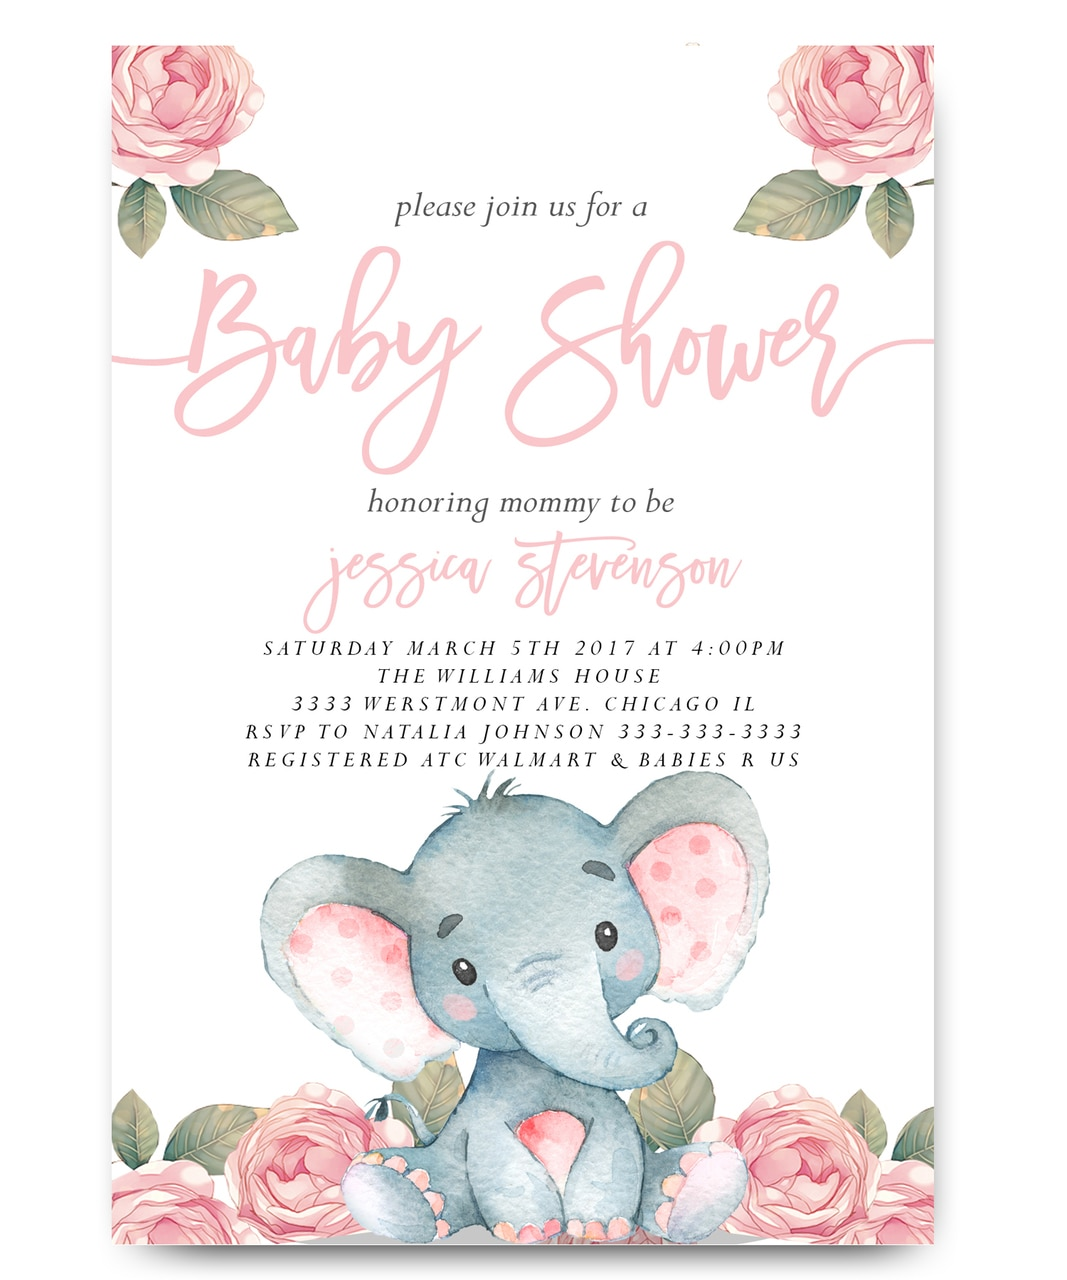 Full Size of Baby Shower:inspirational Elephant Baby Shower Invitations Photo Concepts Elephant Baby Shower Invitations Elephant Baby Shower Invitation Pink Floral Elephant